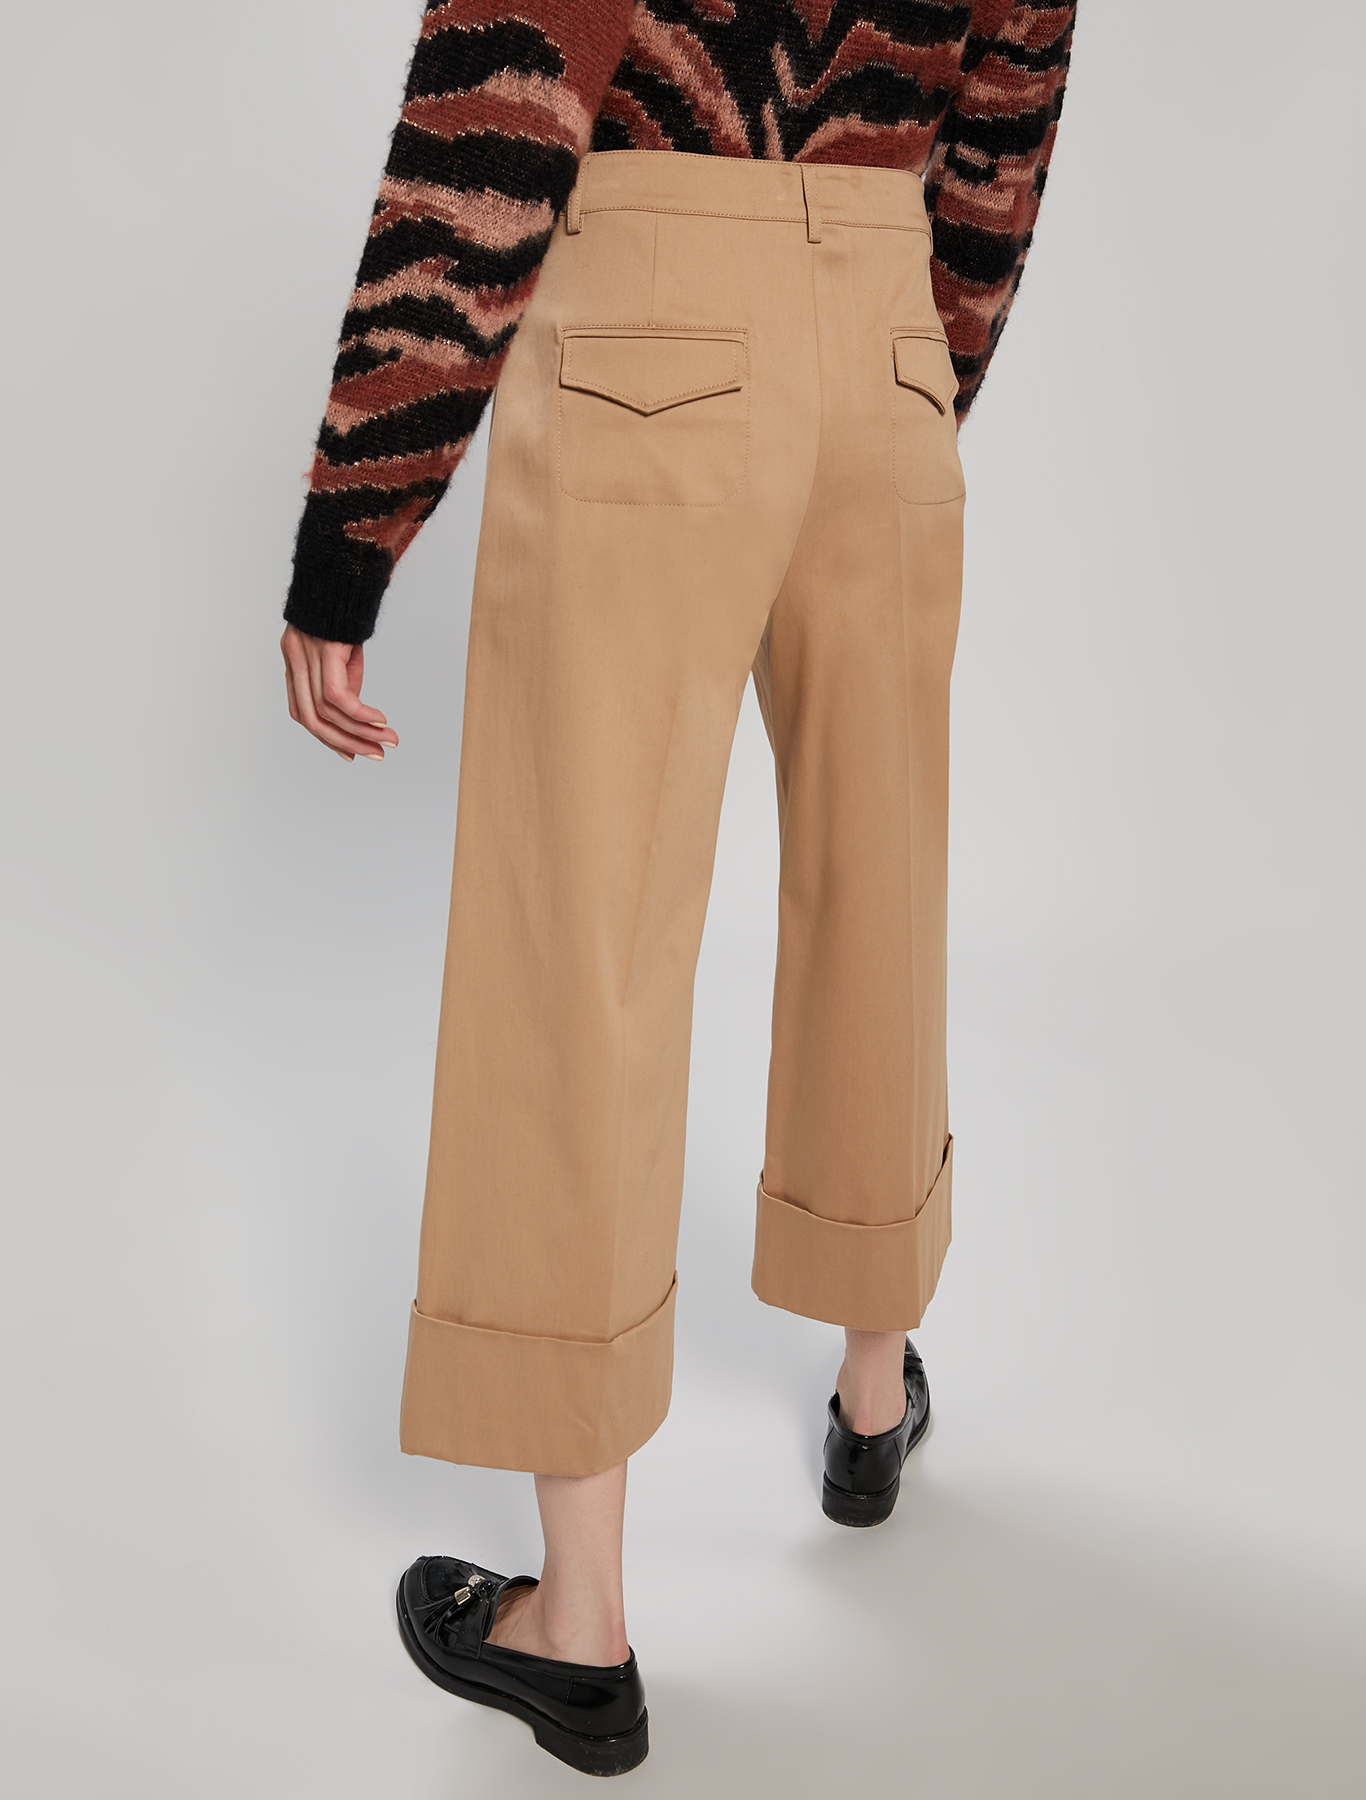 Cotton satin trousers - camel - pennyblack